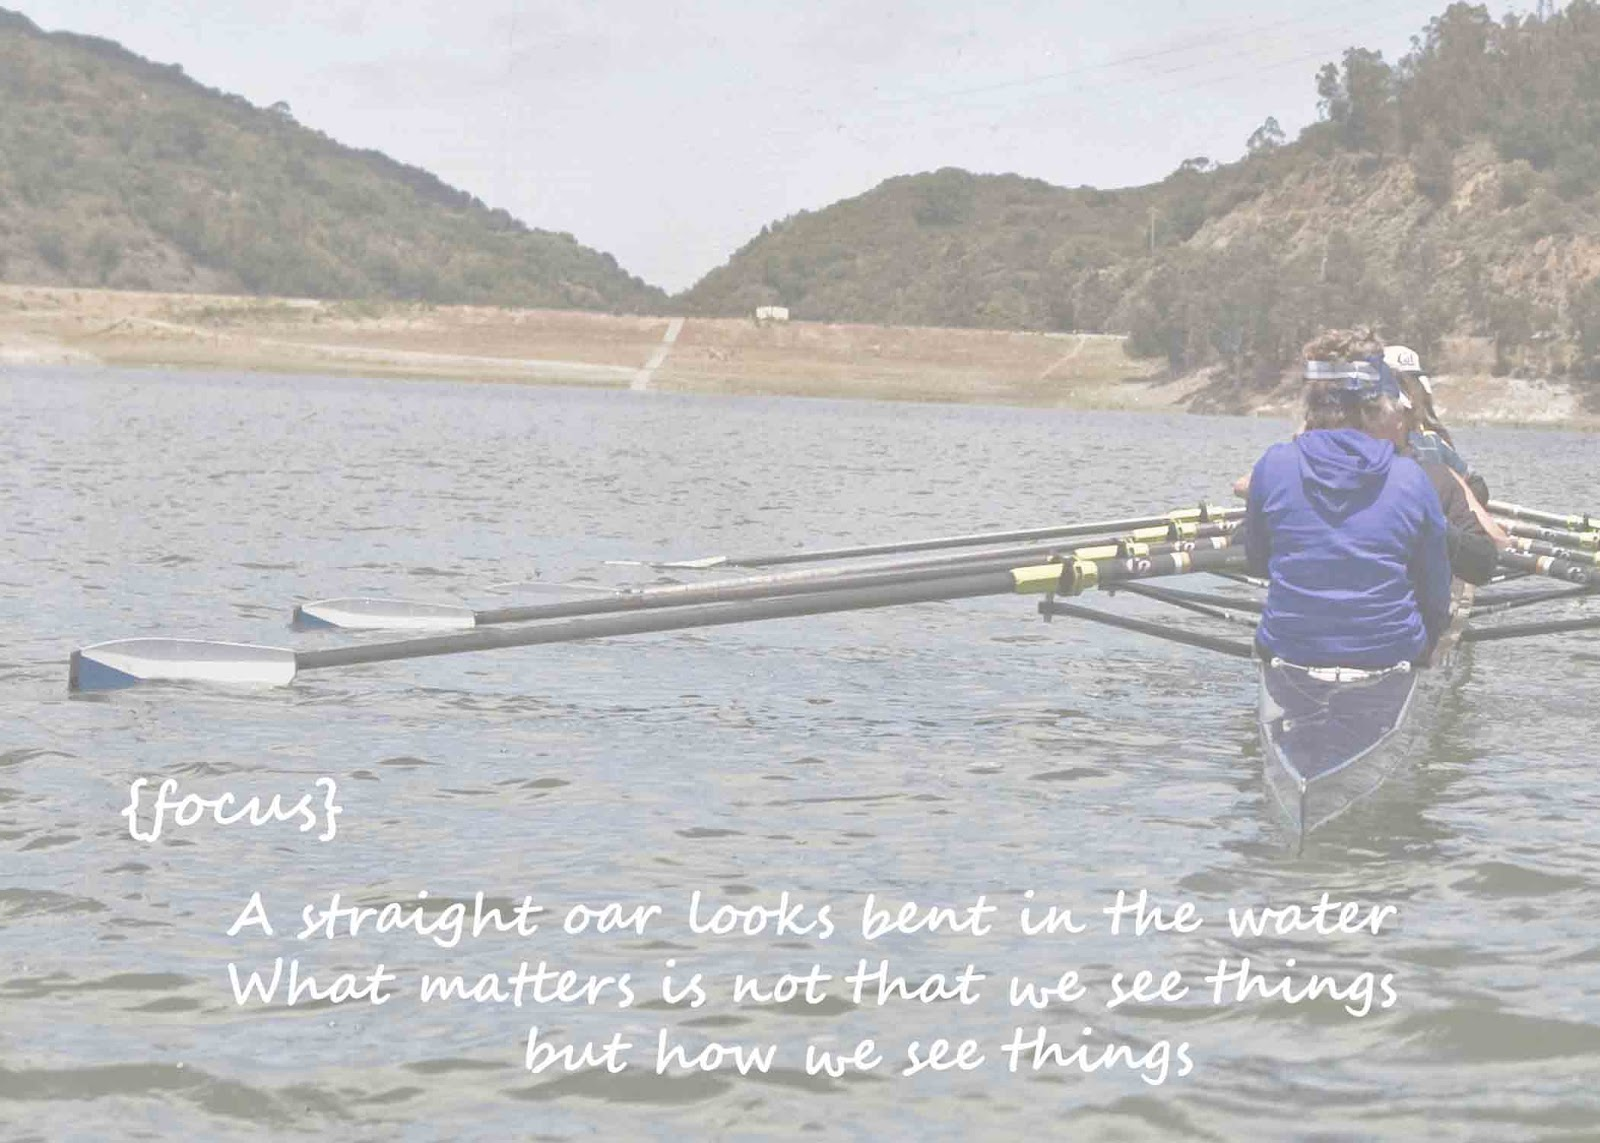 Rowing quote #1